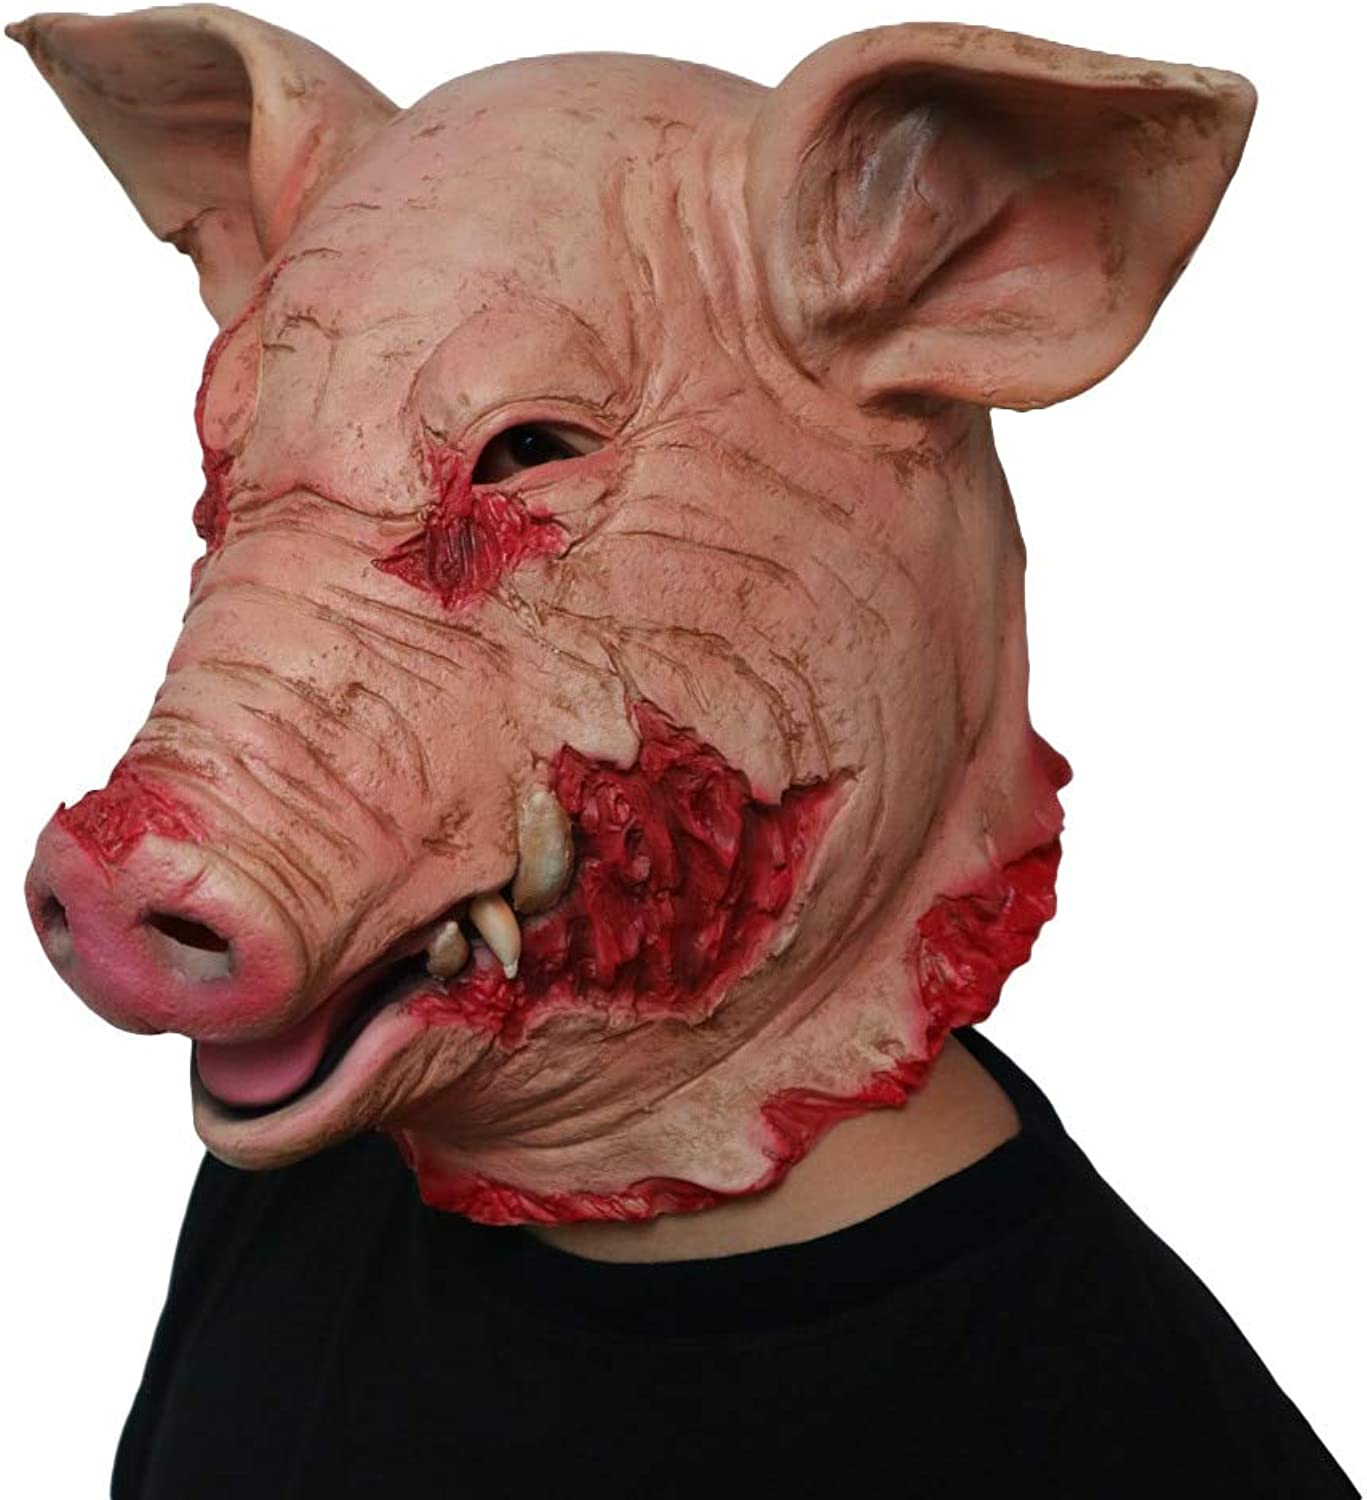 Horror Pig Overhead Animal Mask Latex Pig Mask Halloween Costume Scary Saw Pig Mask Full Head Horror Evil Animal Prop